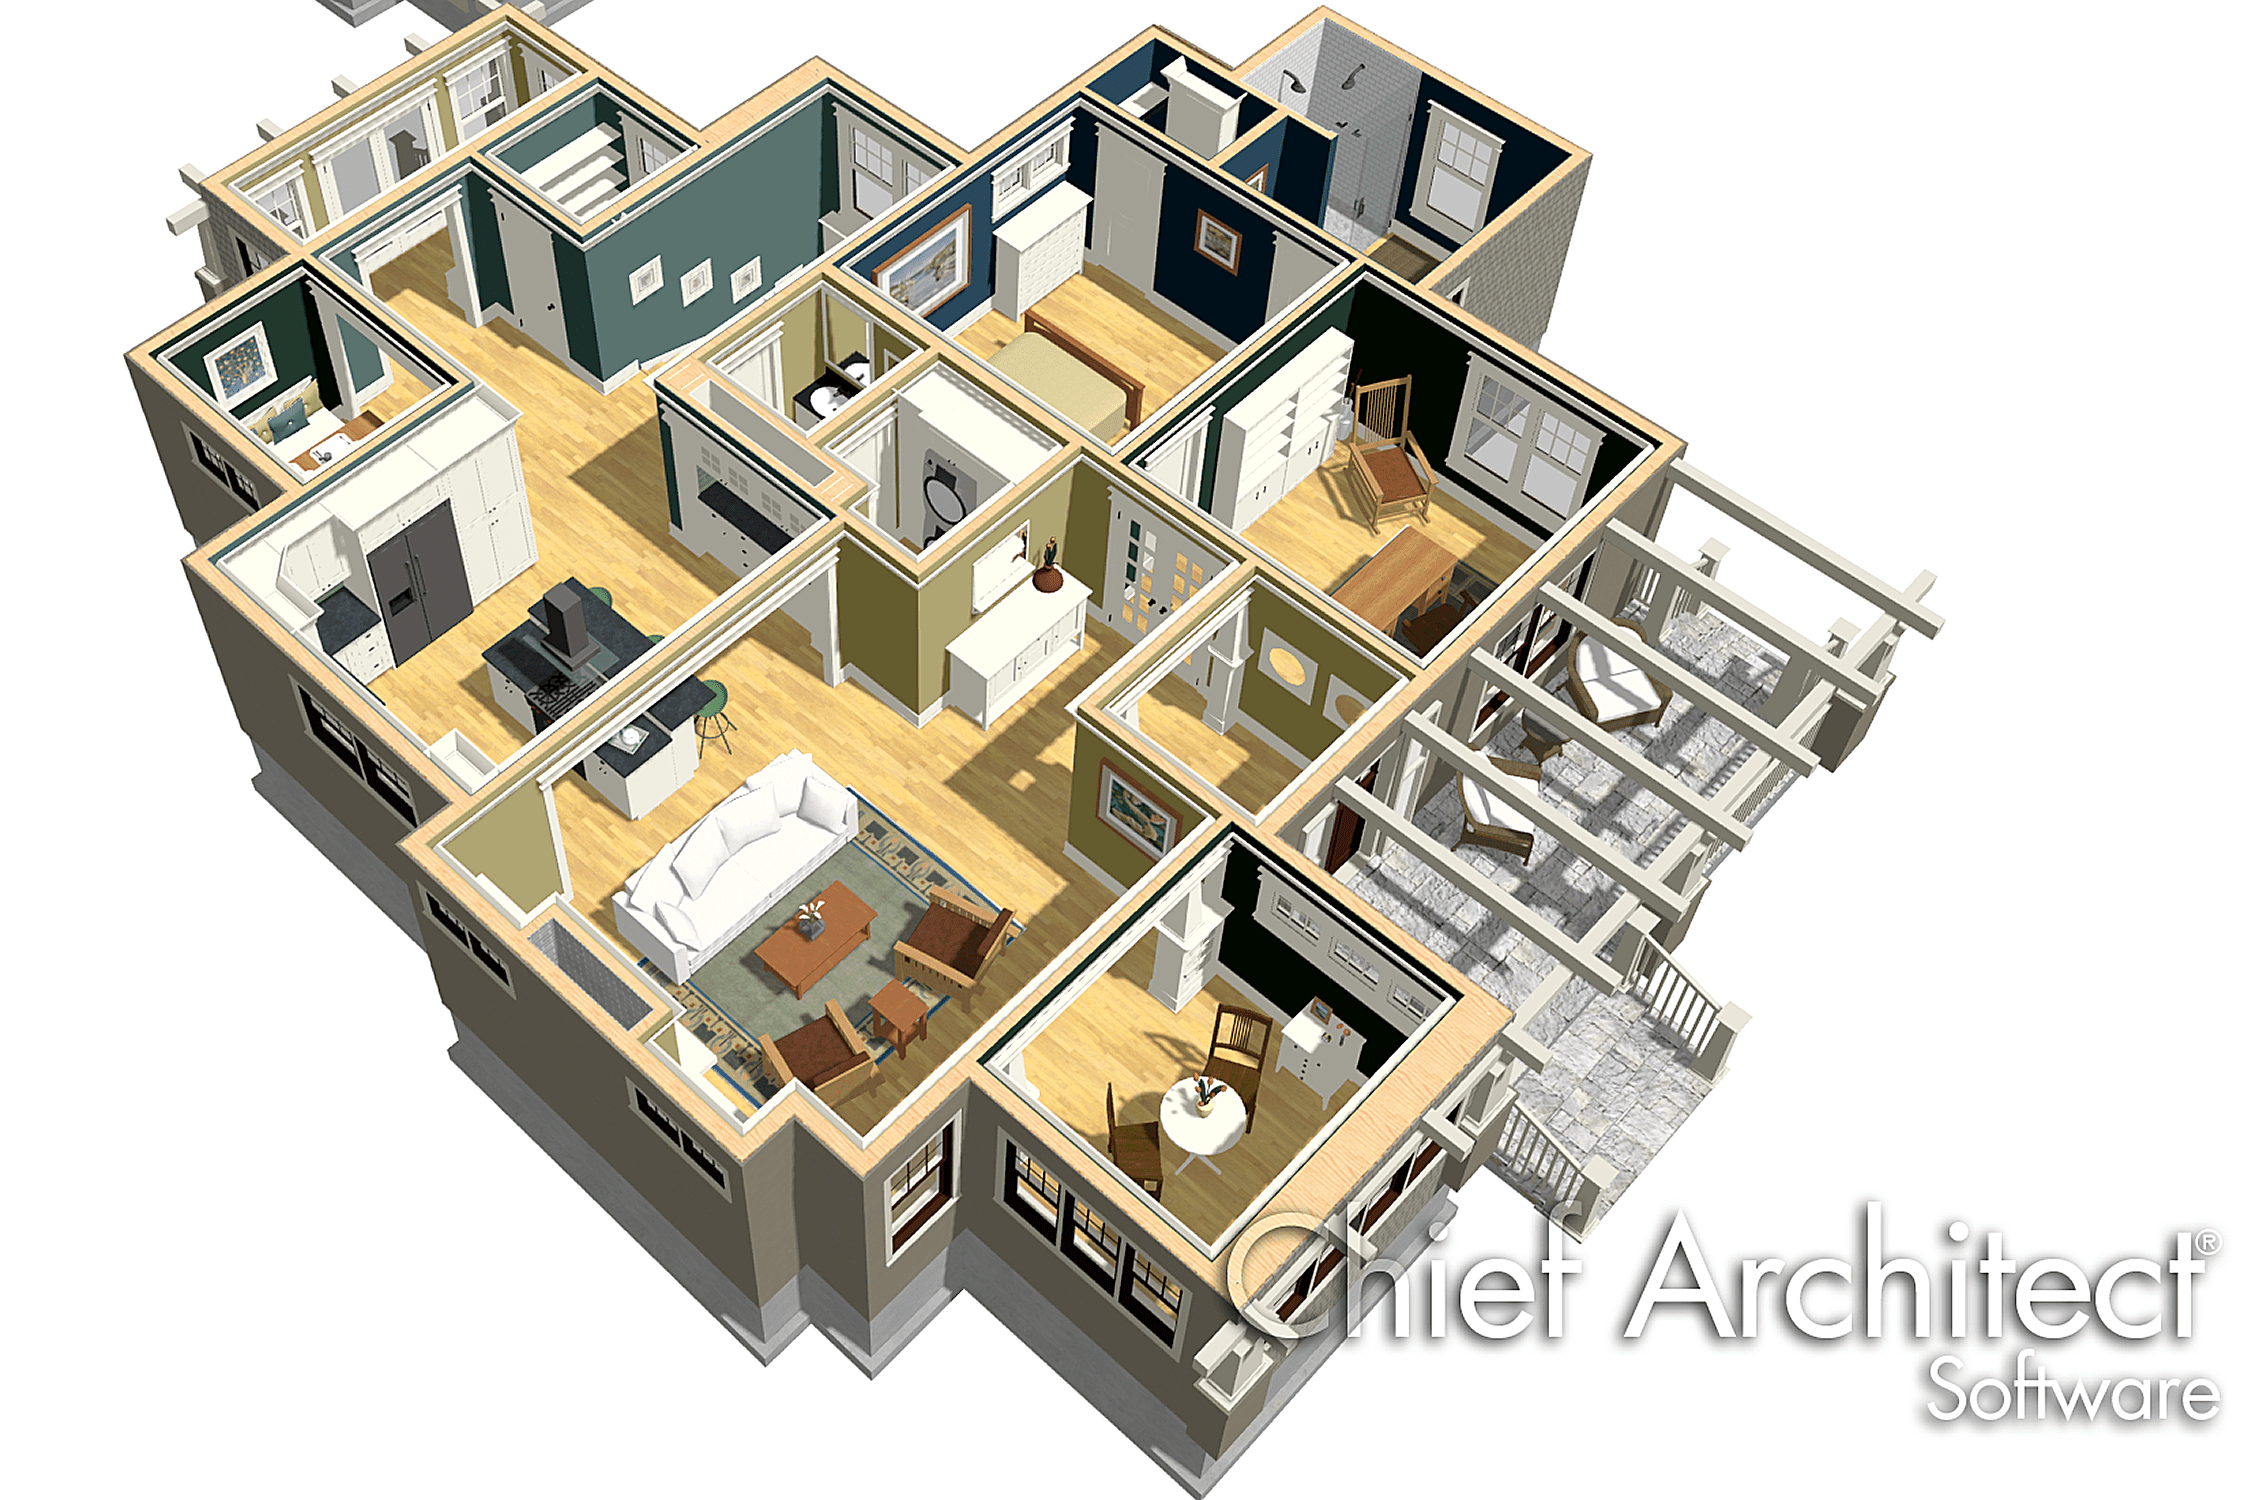 architect software designer chief suite virtual ultimate 3d plan homes floor three dollhouse rendering services roof construction dimensions interior architectural